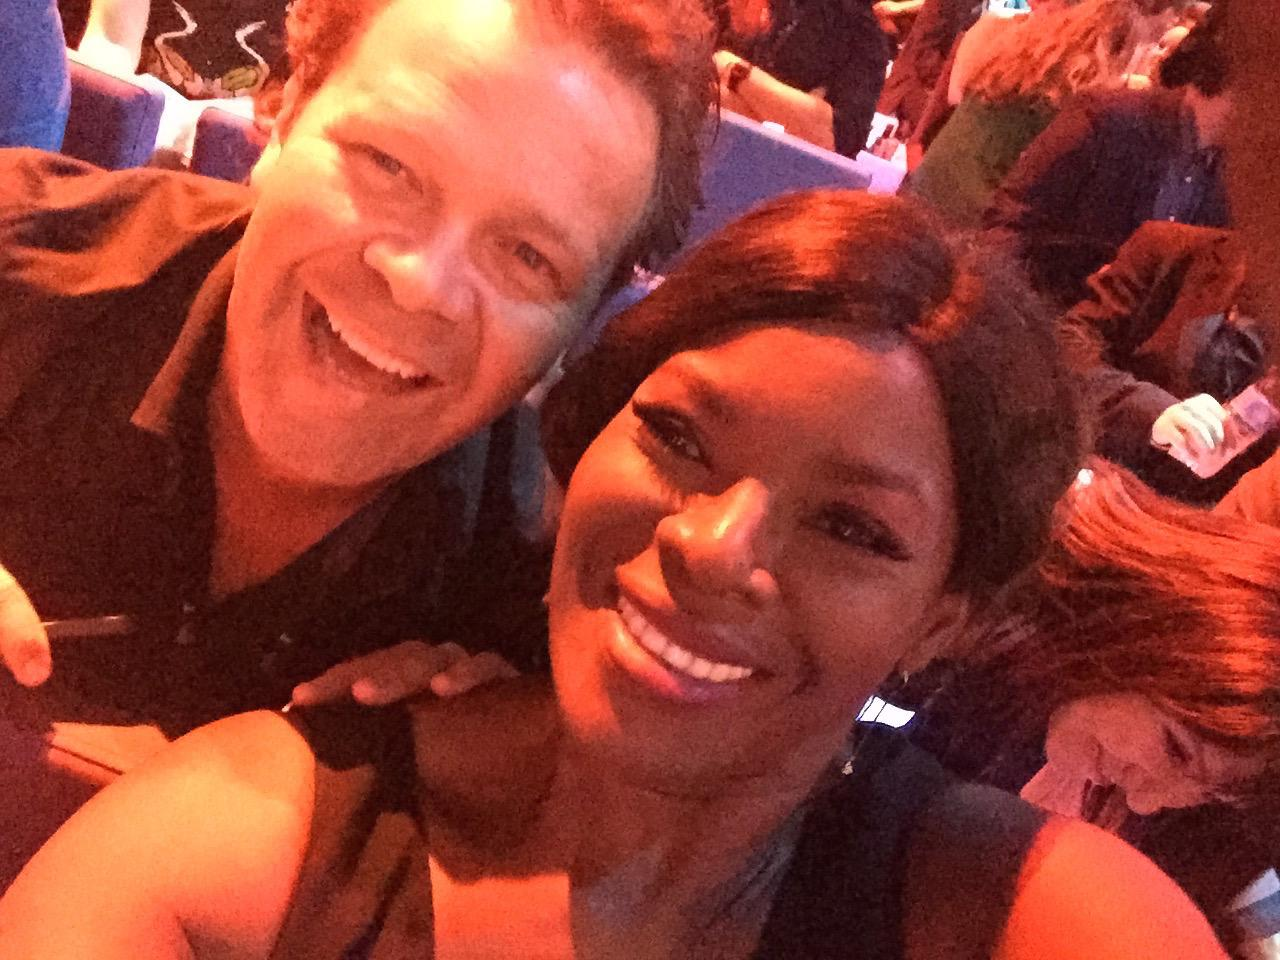 RT @TheMarciaHines: @troycassardaley and I ready for the awards tonight. #ARIAS http://t.co/6xdhhI6mr8